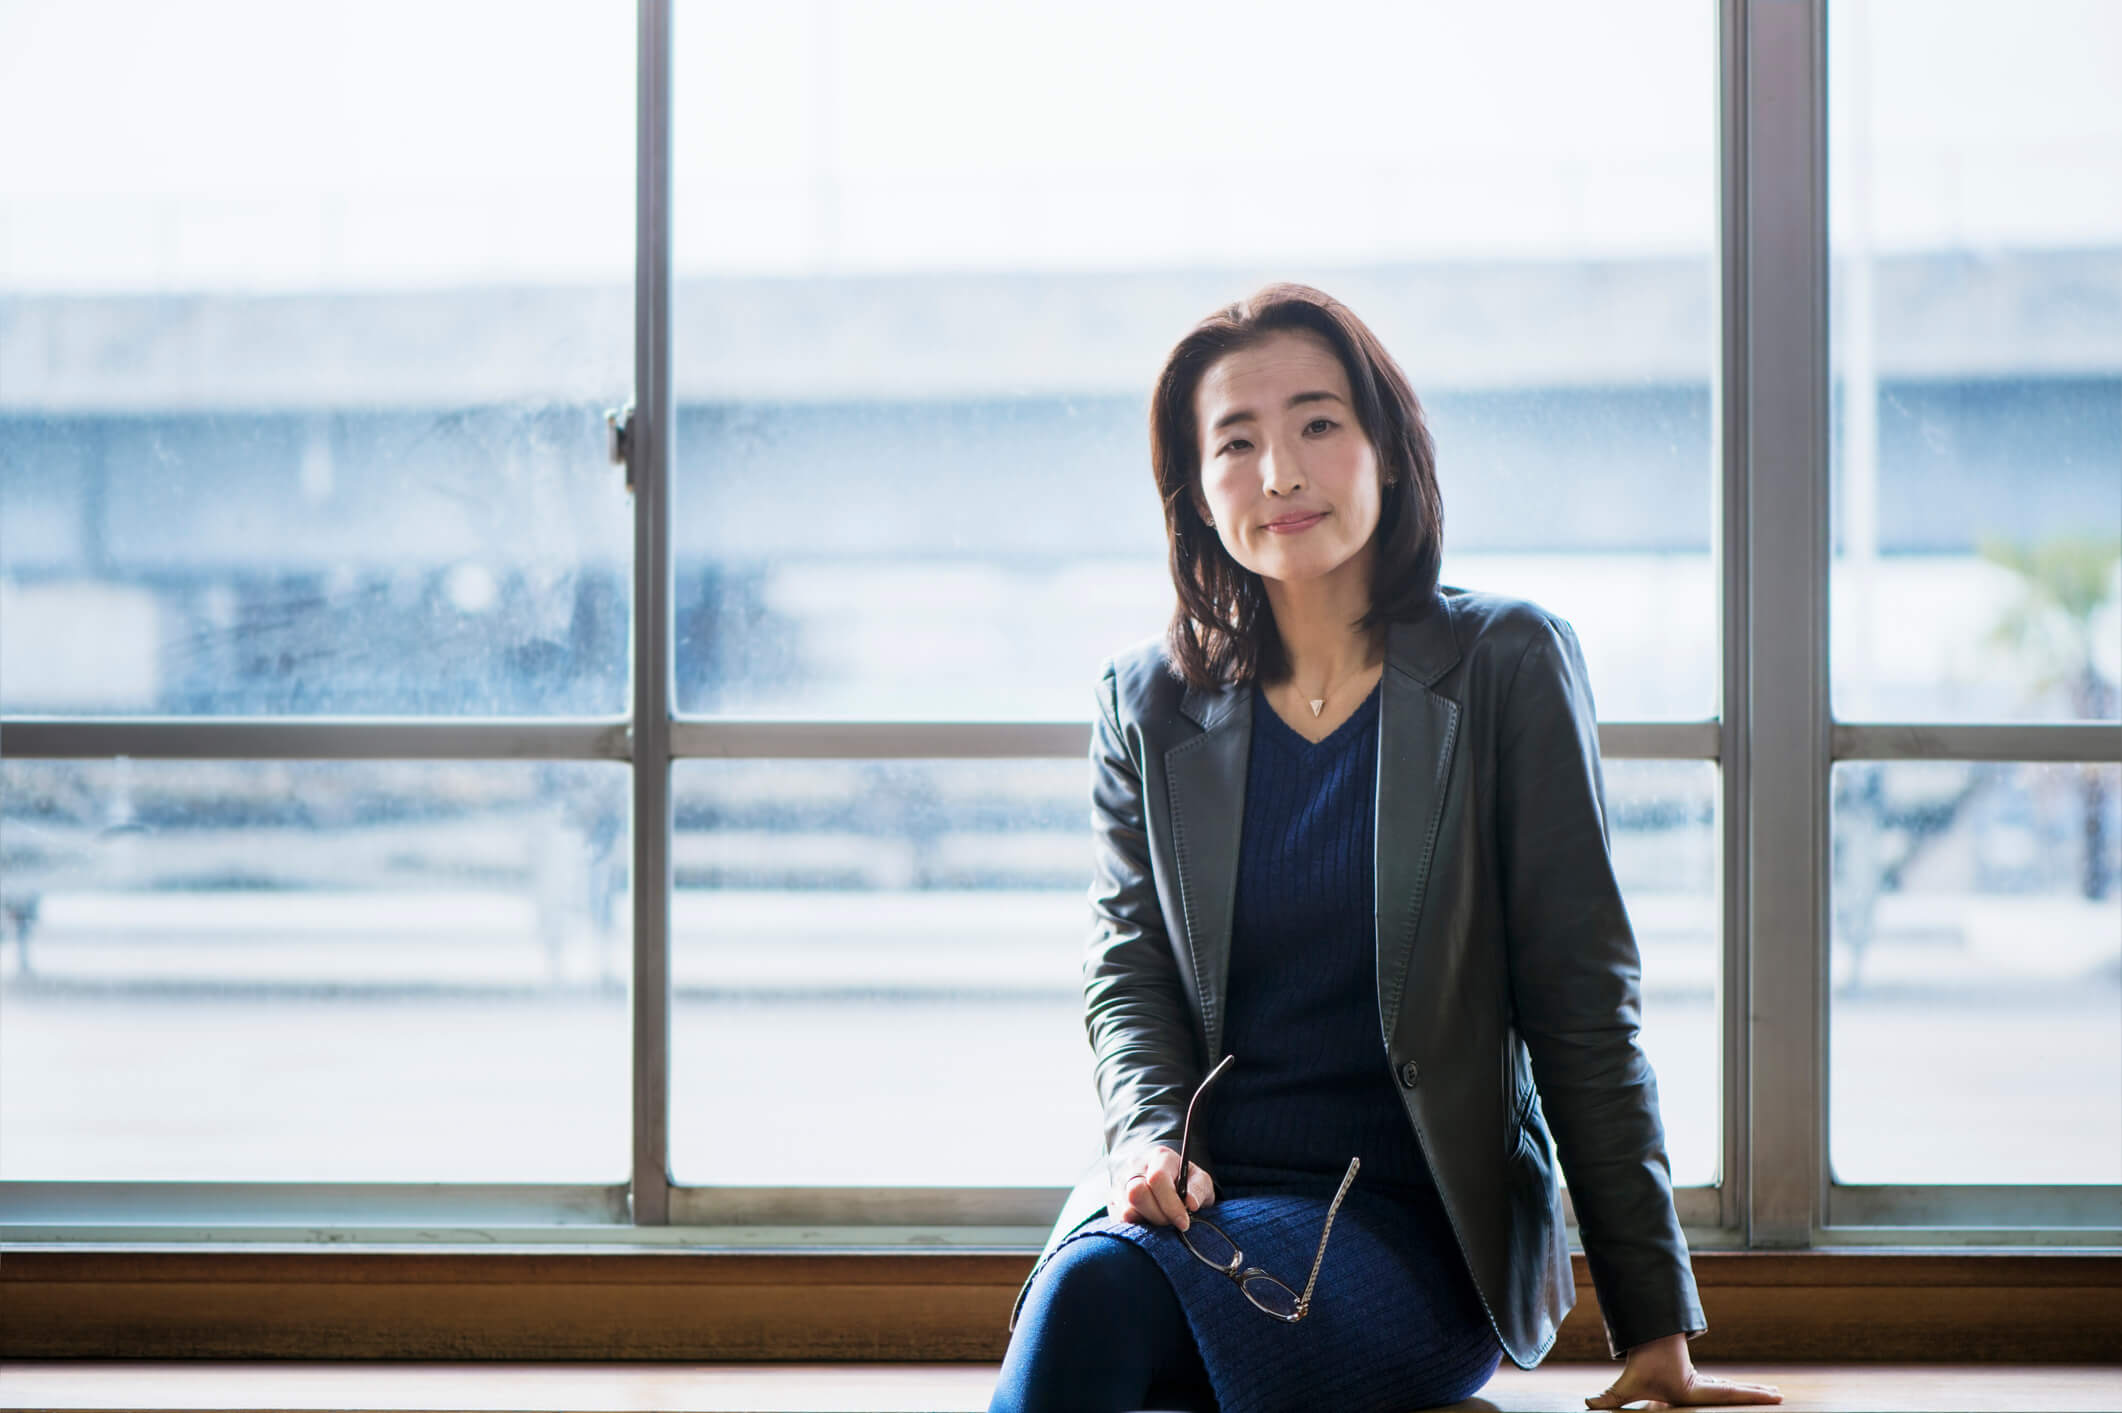 globalization and Japanese female managers